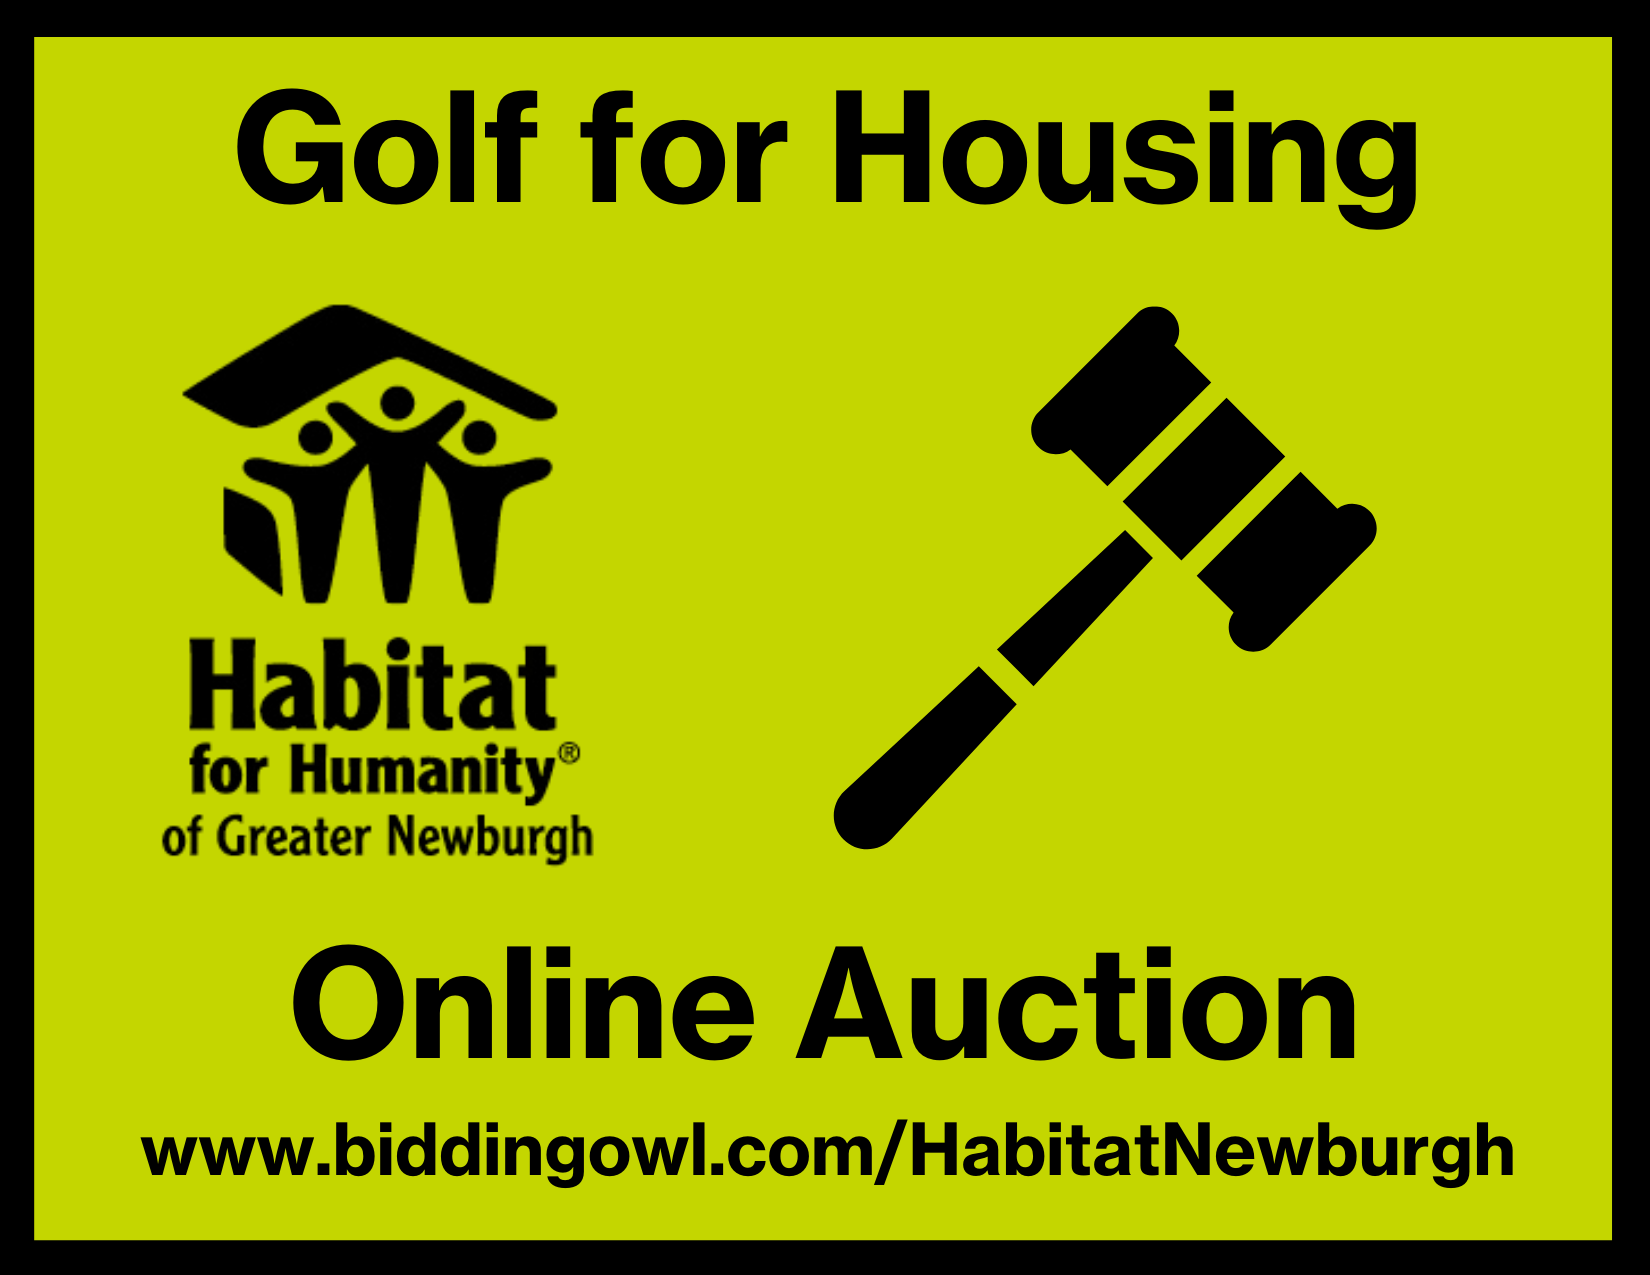 Habitat for Humanity of Greater Newburgh Golf for Housing Auction